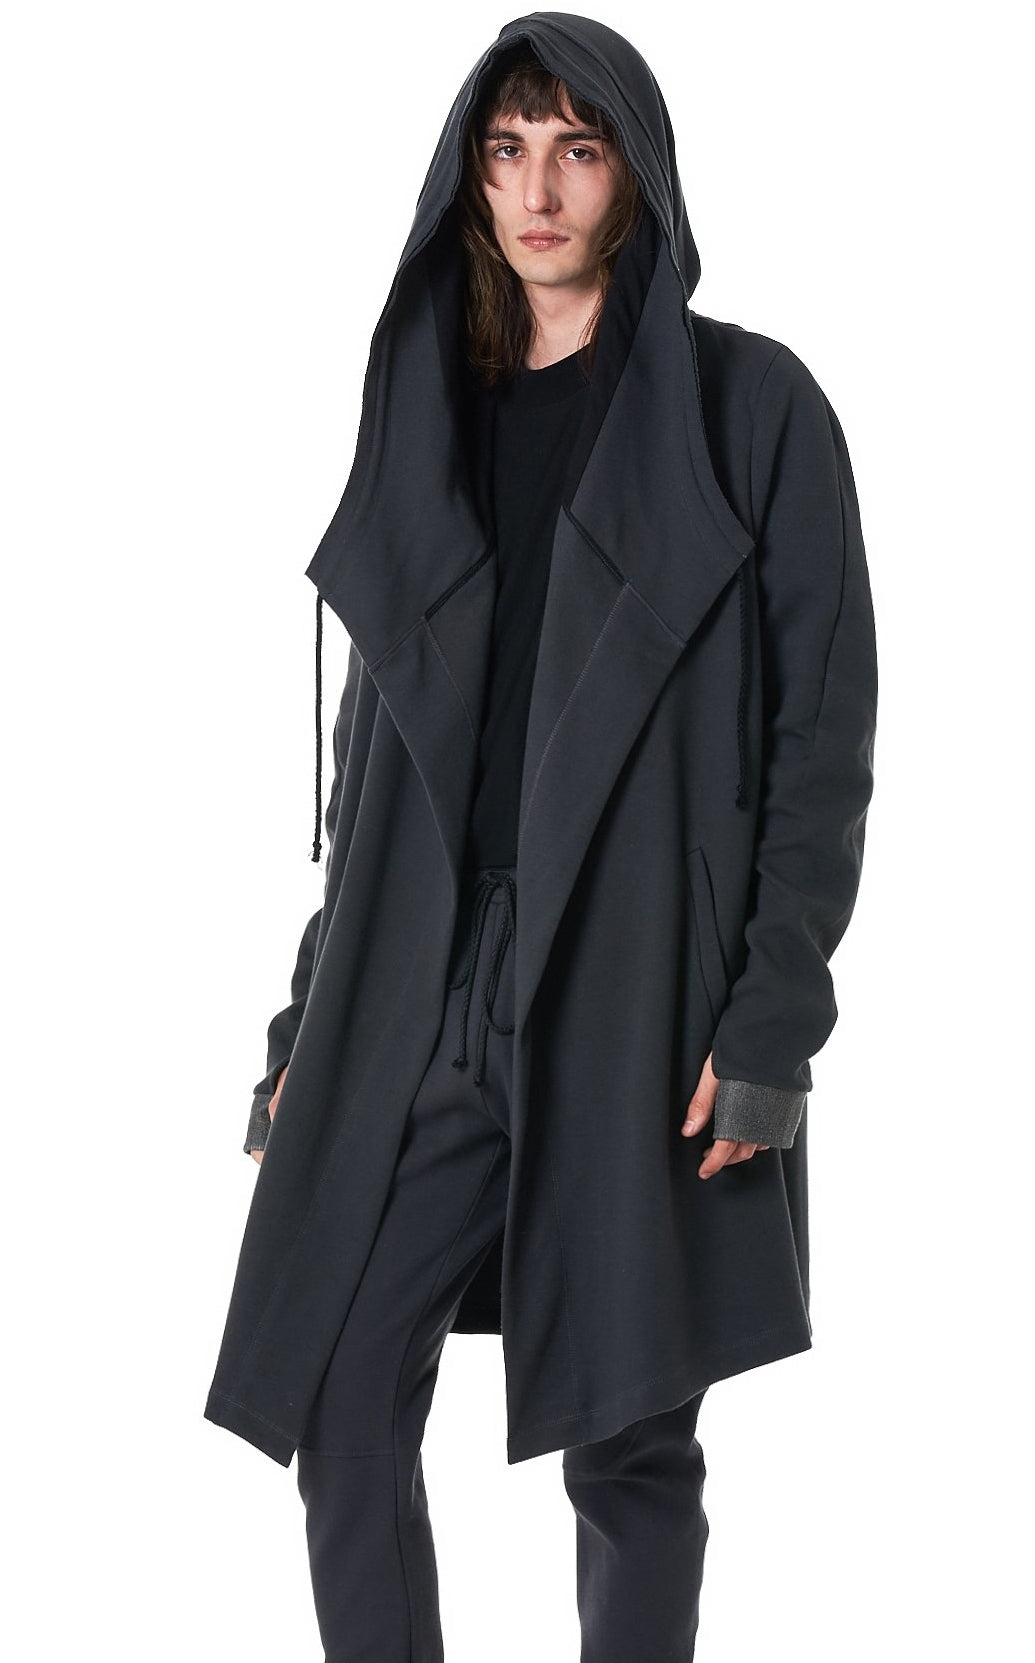 Men's Relaxed-fit Long Big Hooded Cardigan Coat / Asymmetric Elongated Thumbhole Sleeves